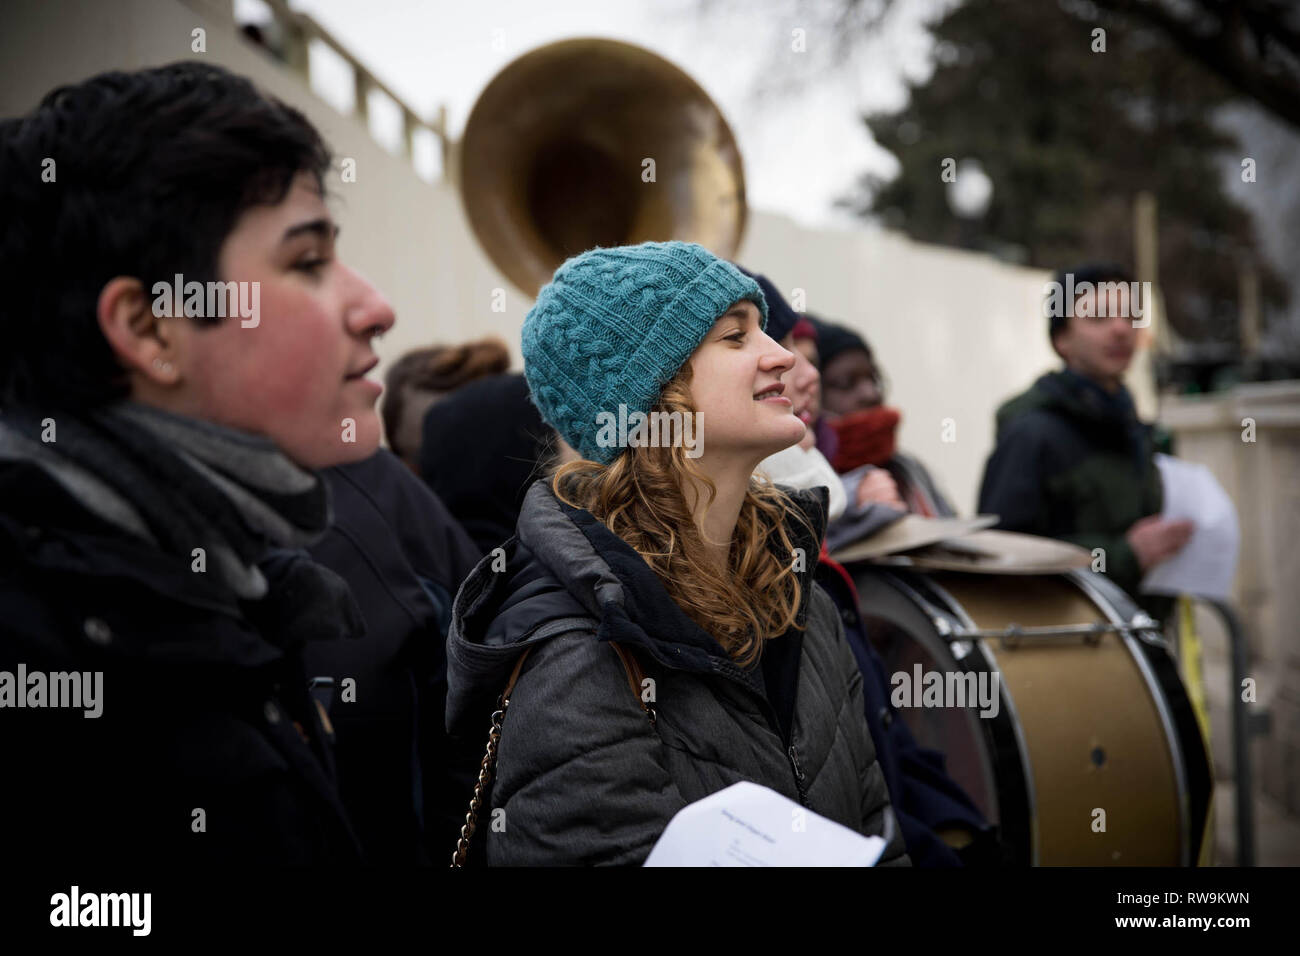 Washington, DC. USA. 12.10.18- Hundreds of young people occupy Representative offices to pressure the new Congress to support a committee for a Green New Deal. Stock Photo